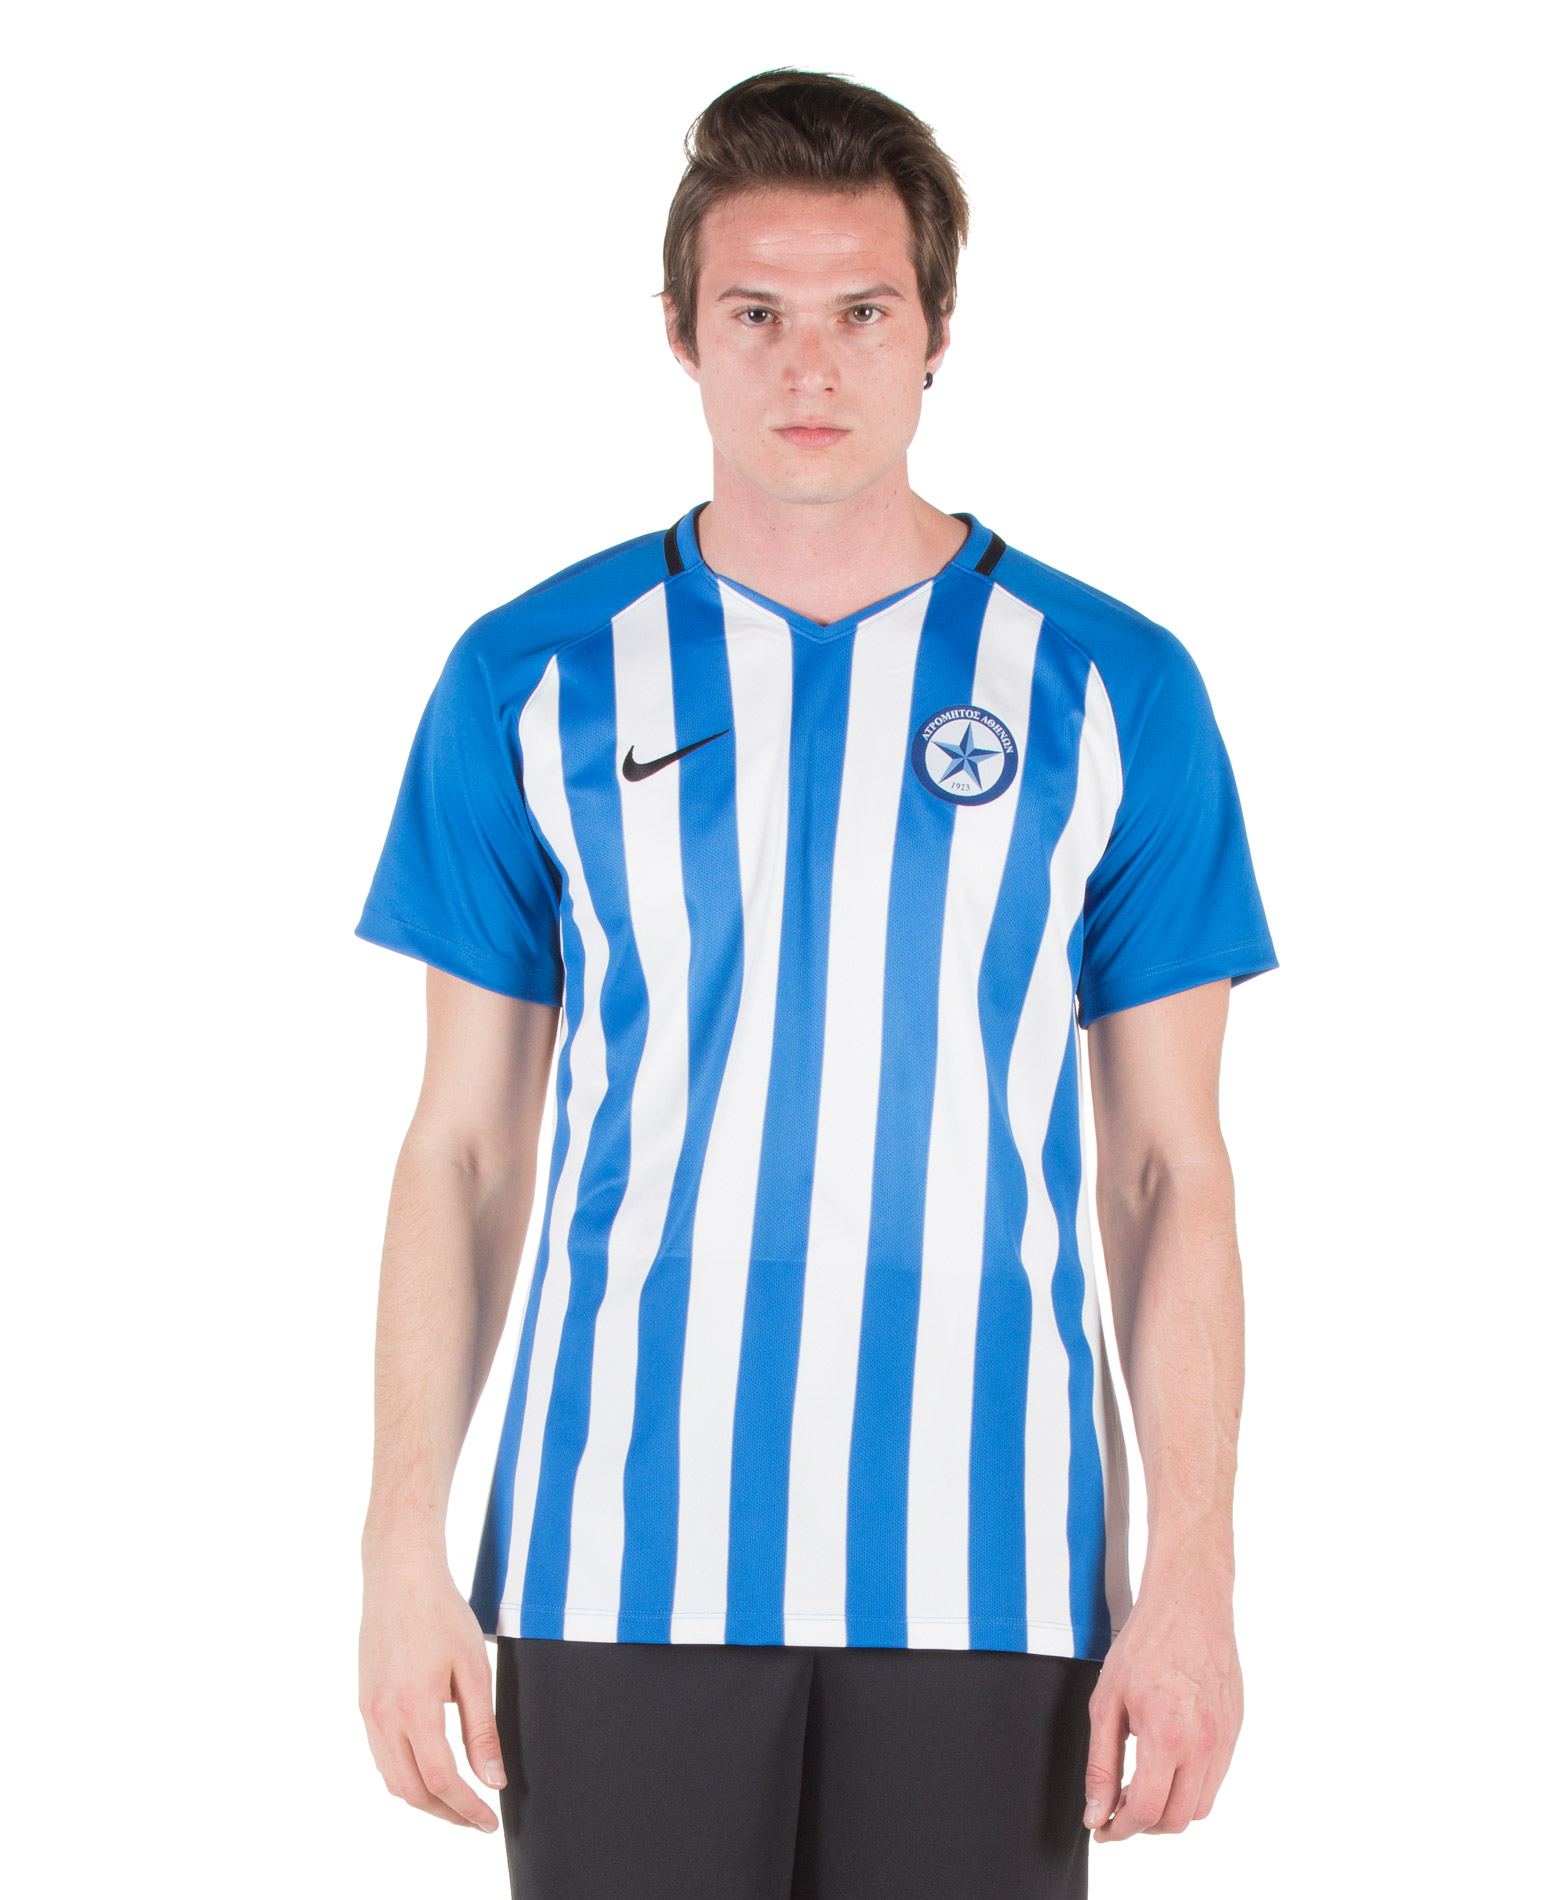 NIKE STRIPED DIVISION SS JERSEY ATROMITOS FC 894081-464 Λευκό